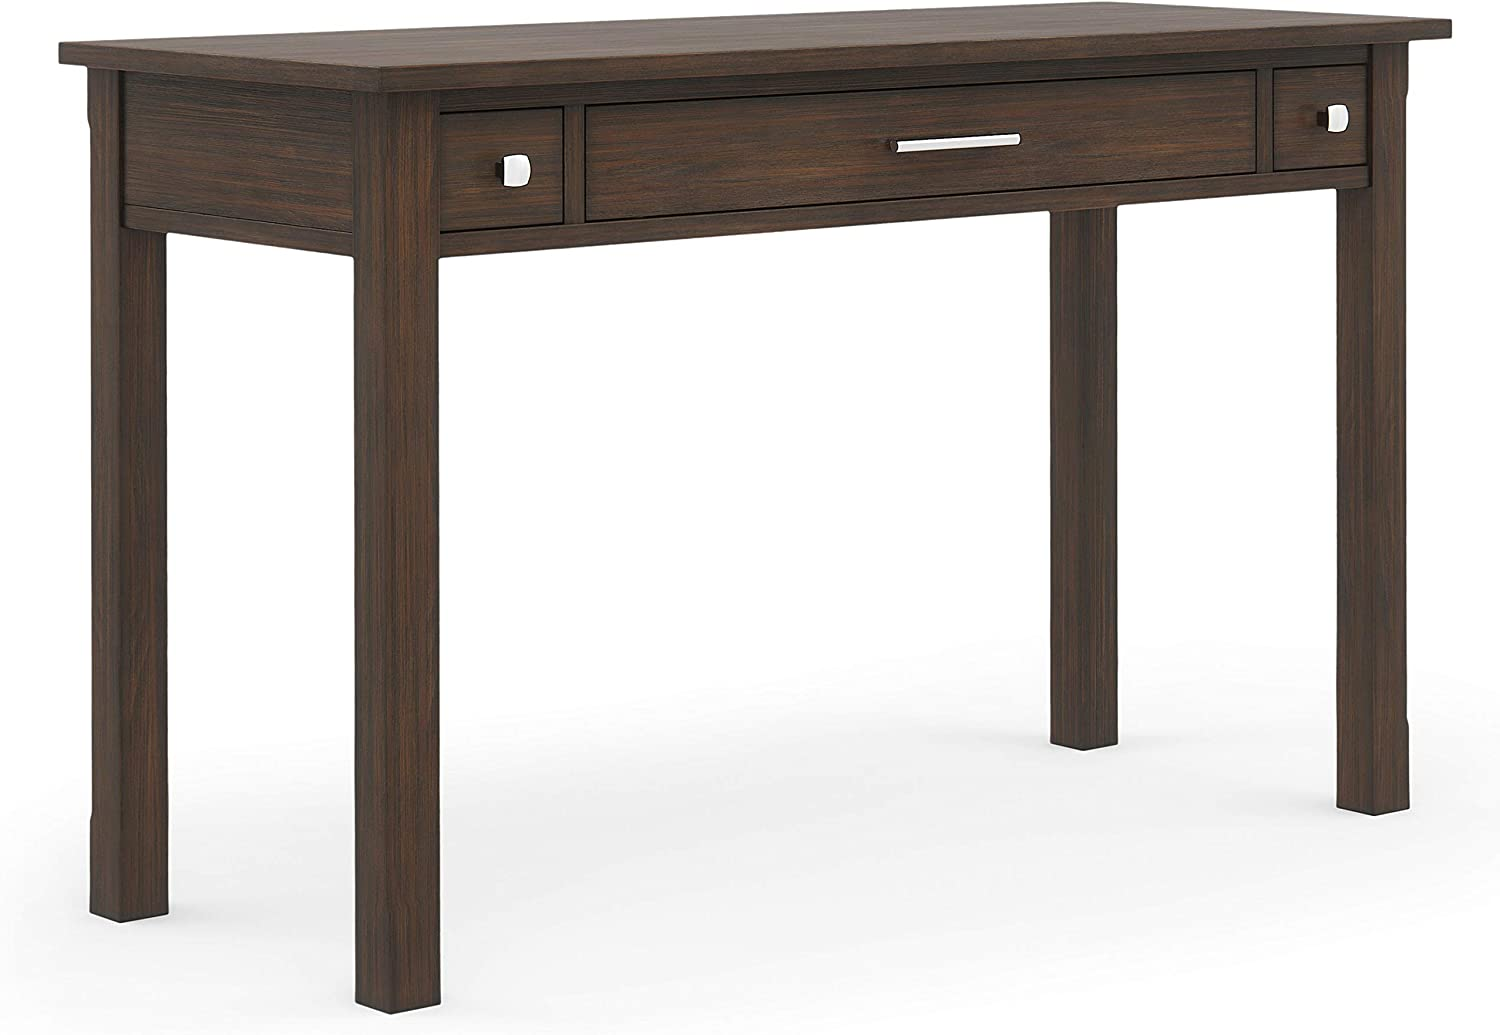 SIMPLIHOME Avalon SOLID WOOD Contemporary Modern 47 inch Wide Home Office Desk, Writing Table, Workstation, Study Table Furniture in Farmhouse Brown with 2 Drawerss